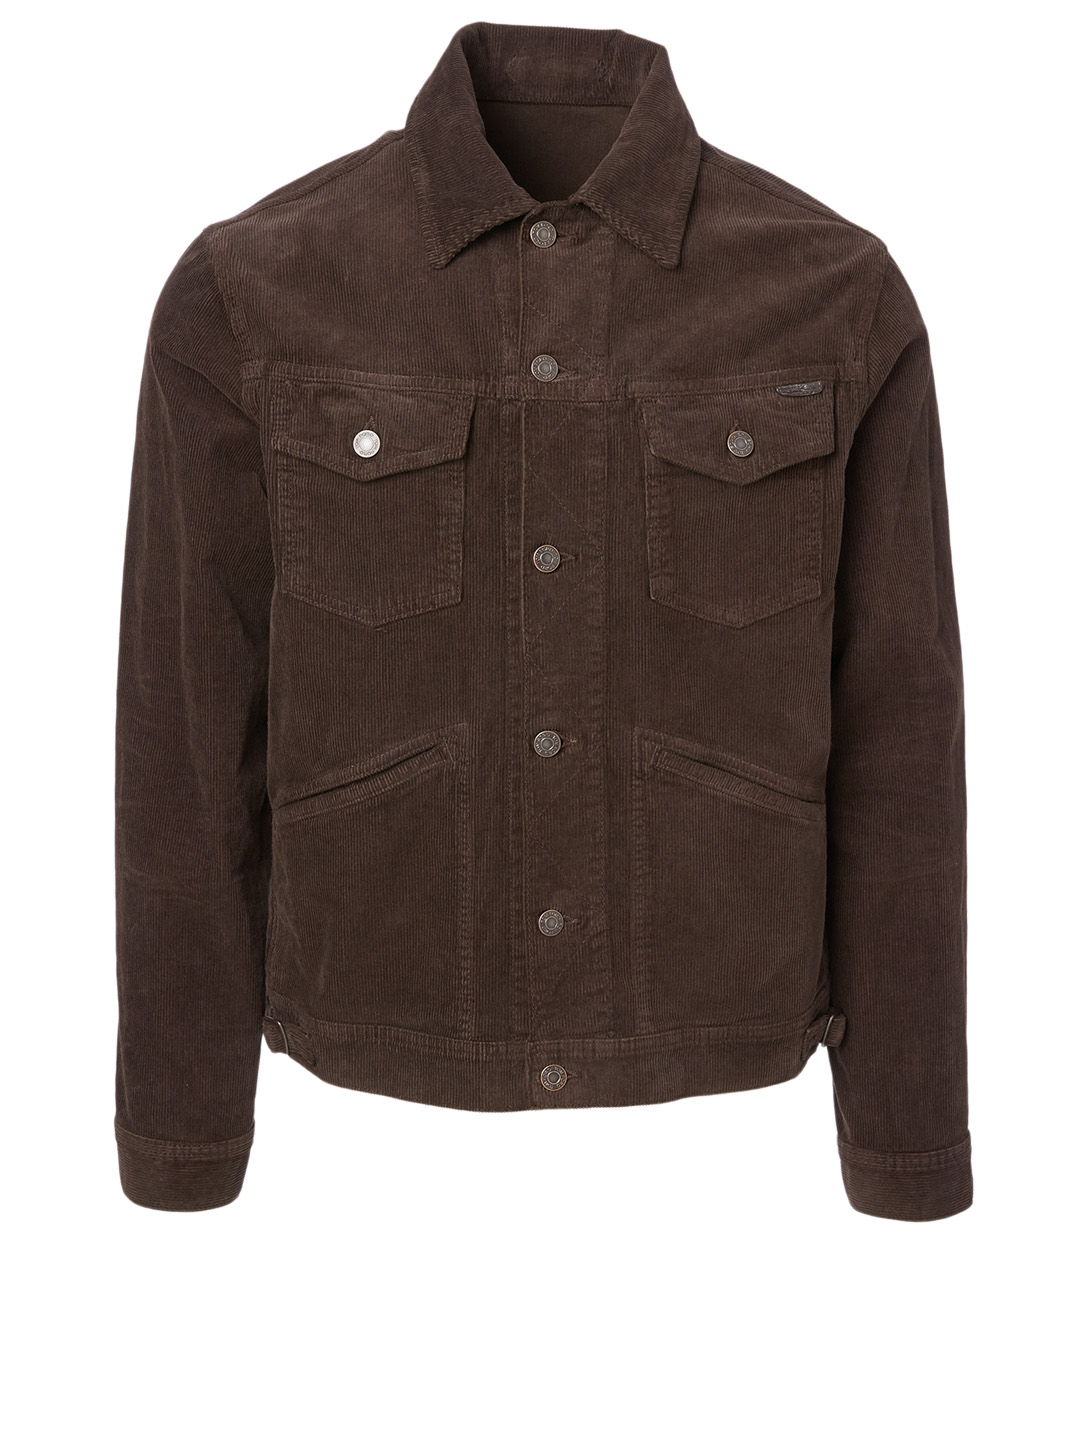 TOM FORD Icon Corduroy Jacket Men's Brown